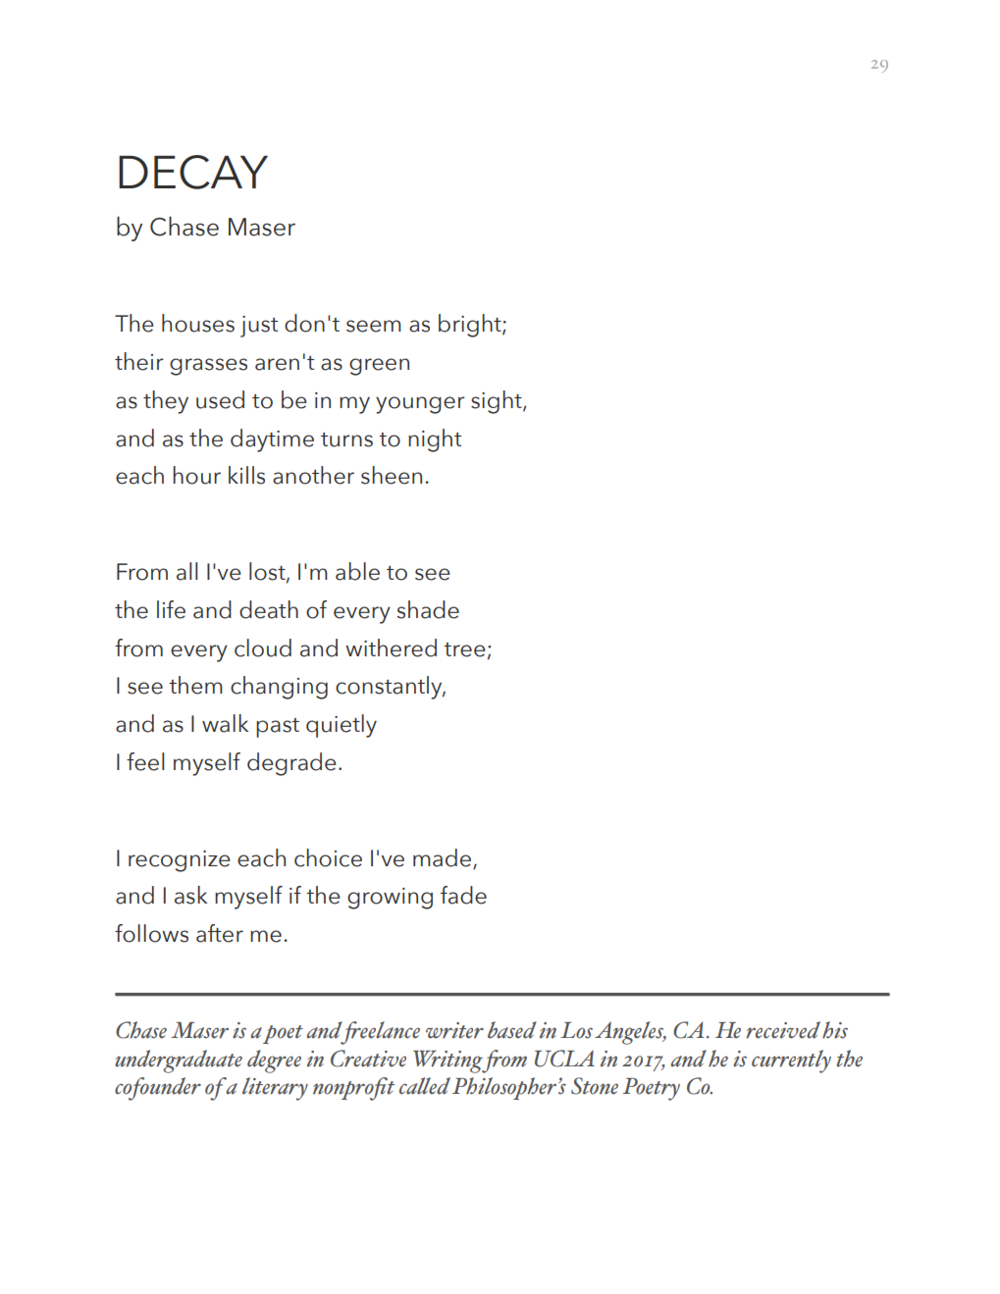 My second poem  Decay